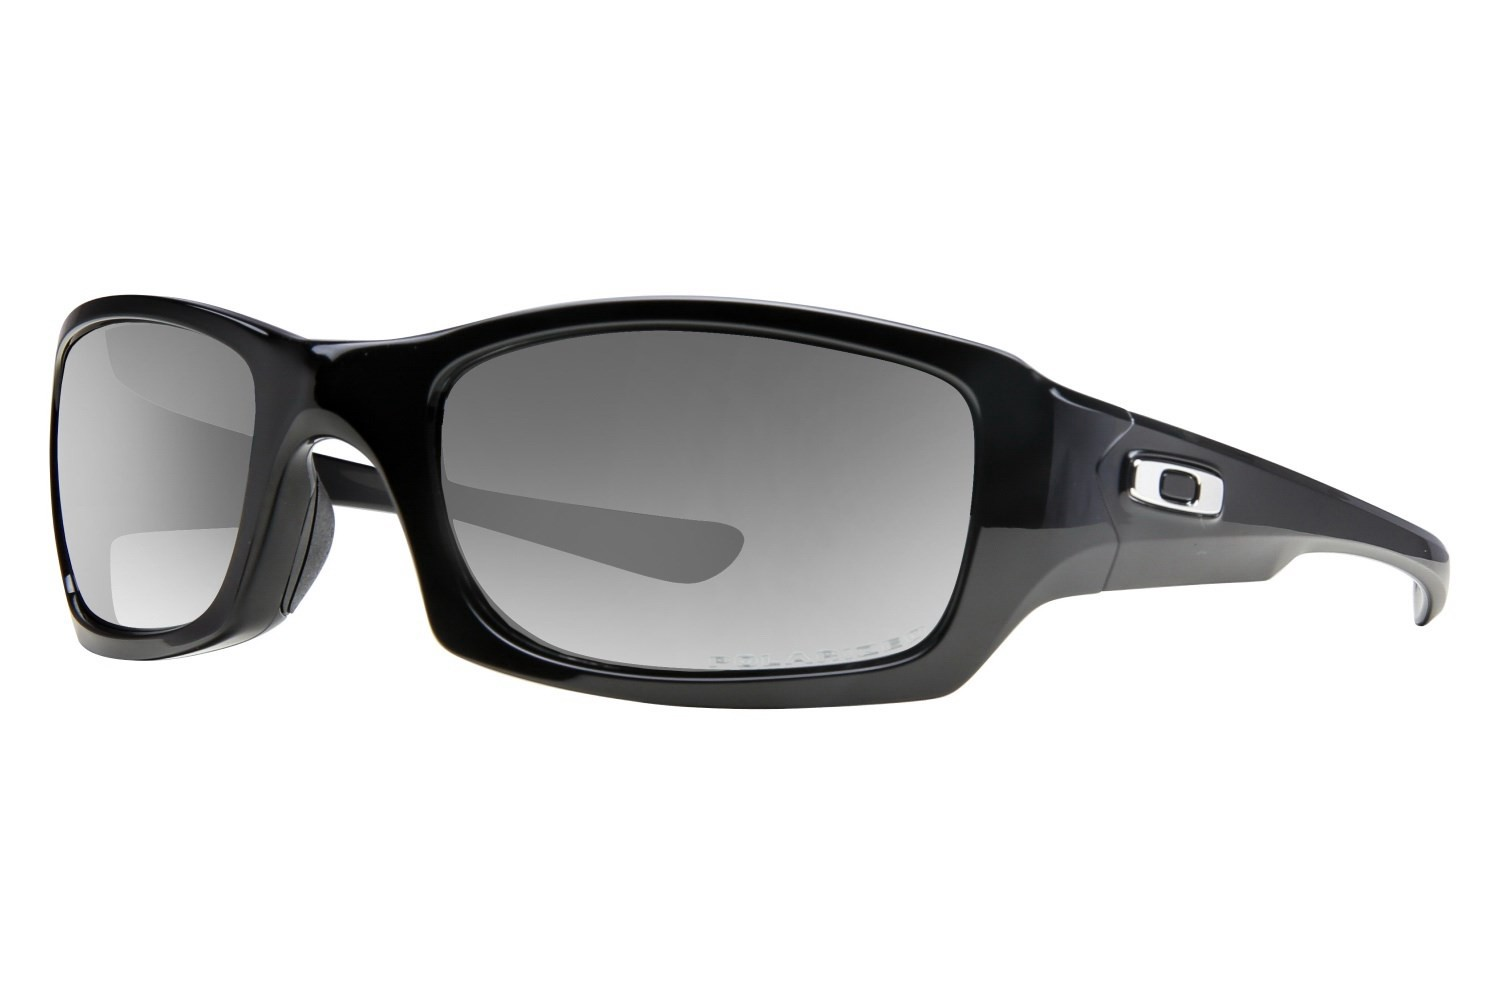 daeca1dfe2e7d Review Oakley Fives Squared Iridium Polarized Sunglasses